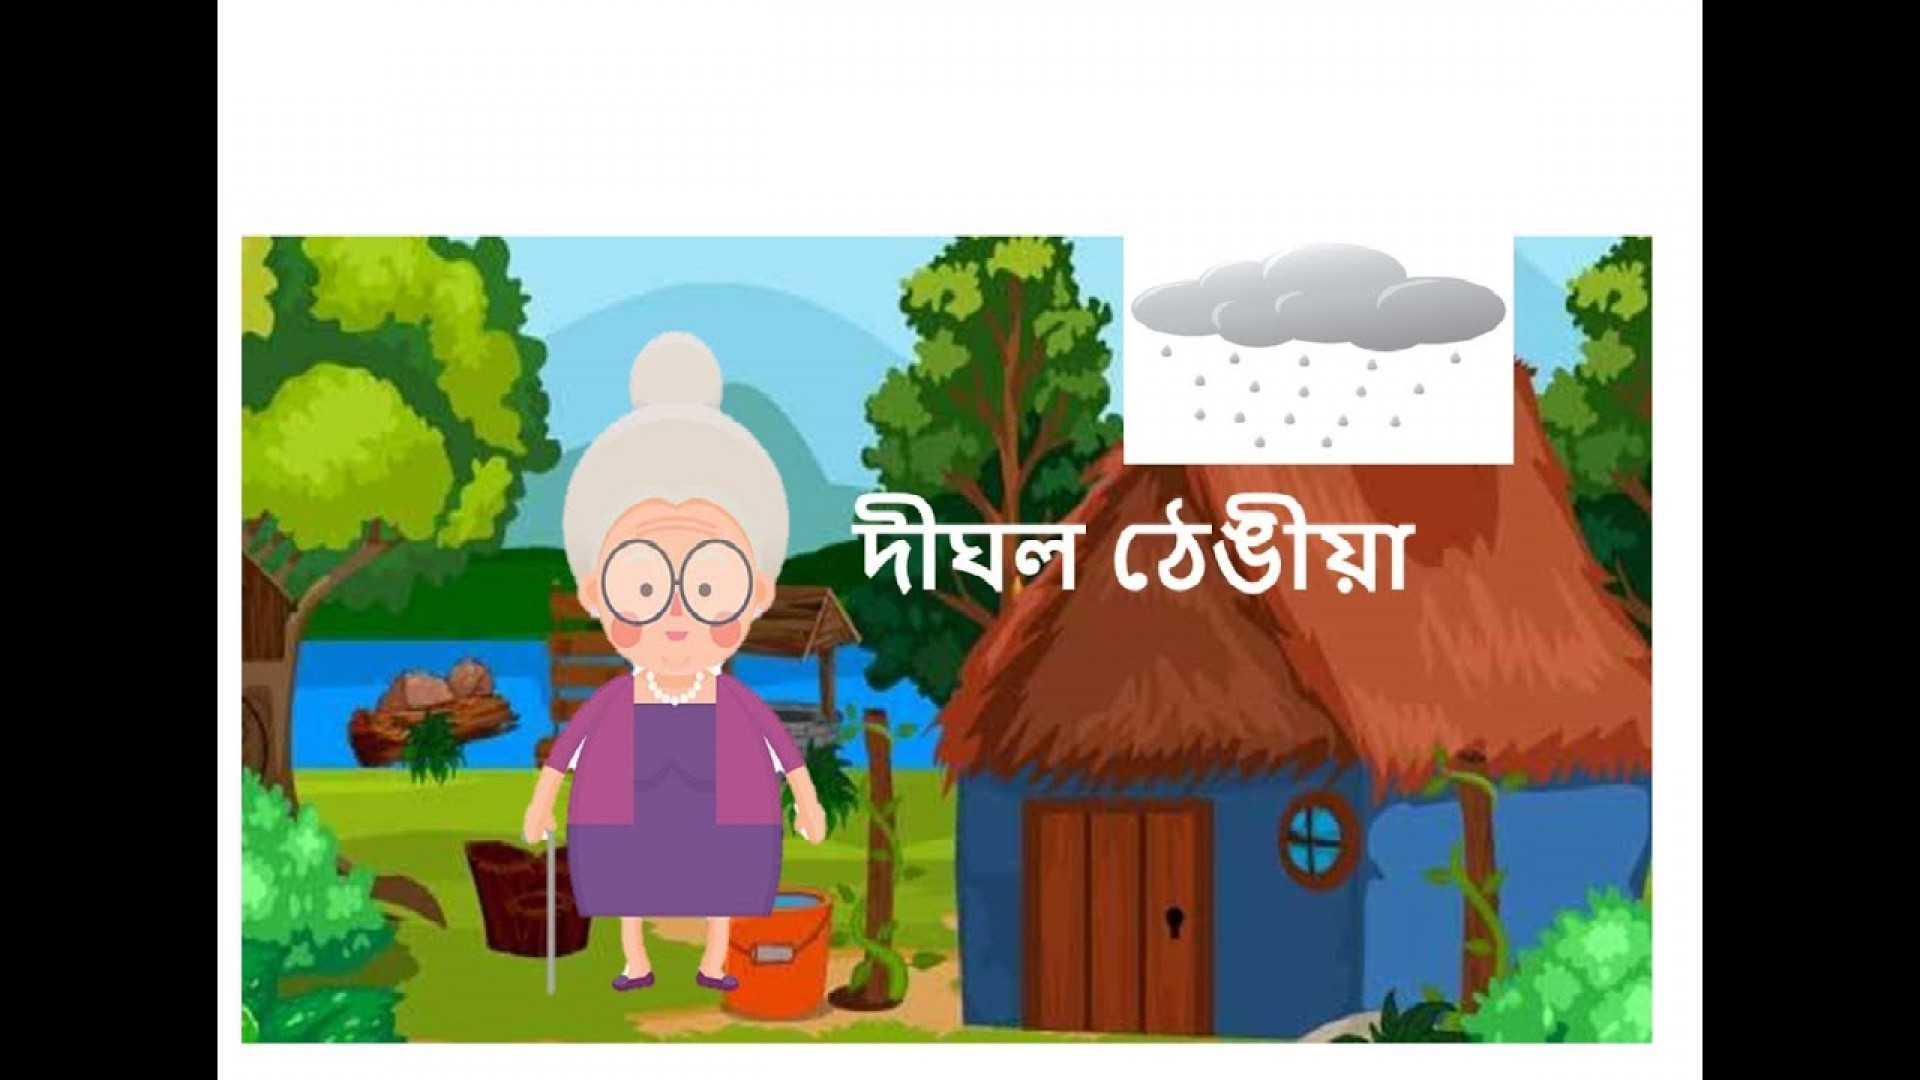 017 Essay On Character In Hindi Example 8055012596 Lakshminath Frightening My Favourite Cartoon Shin Chan Development Importance Of Letter 1920